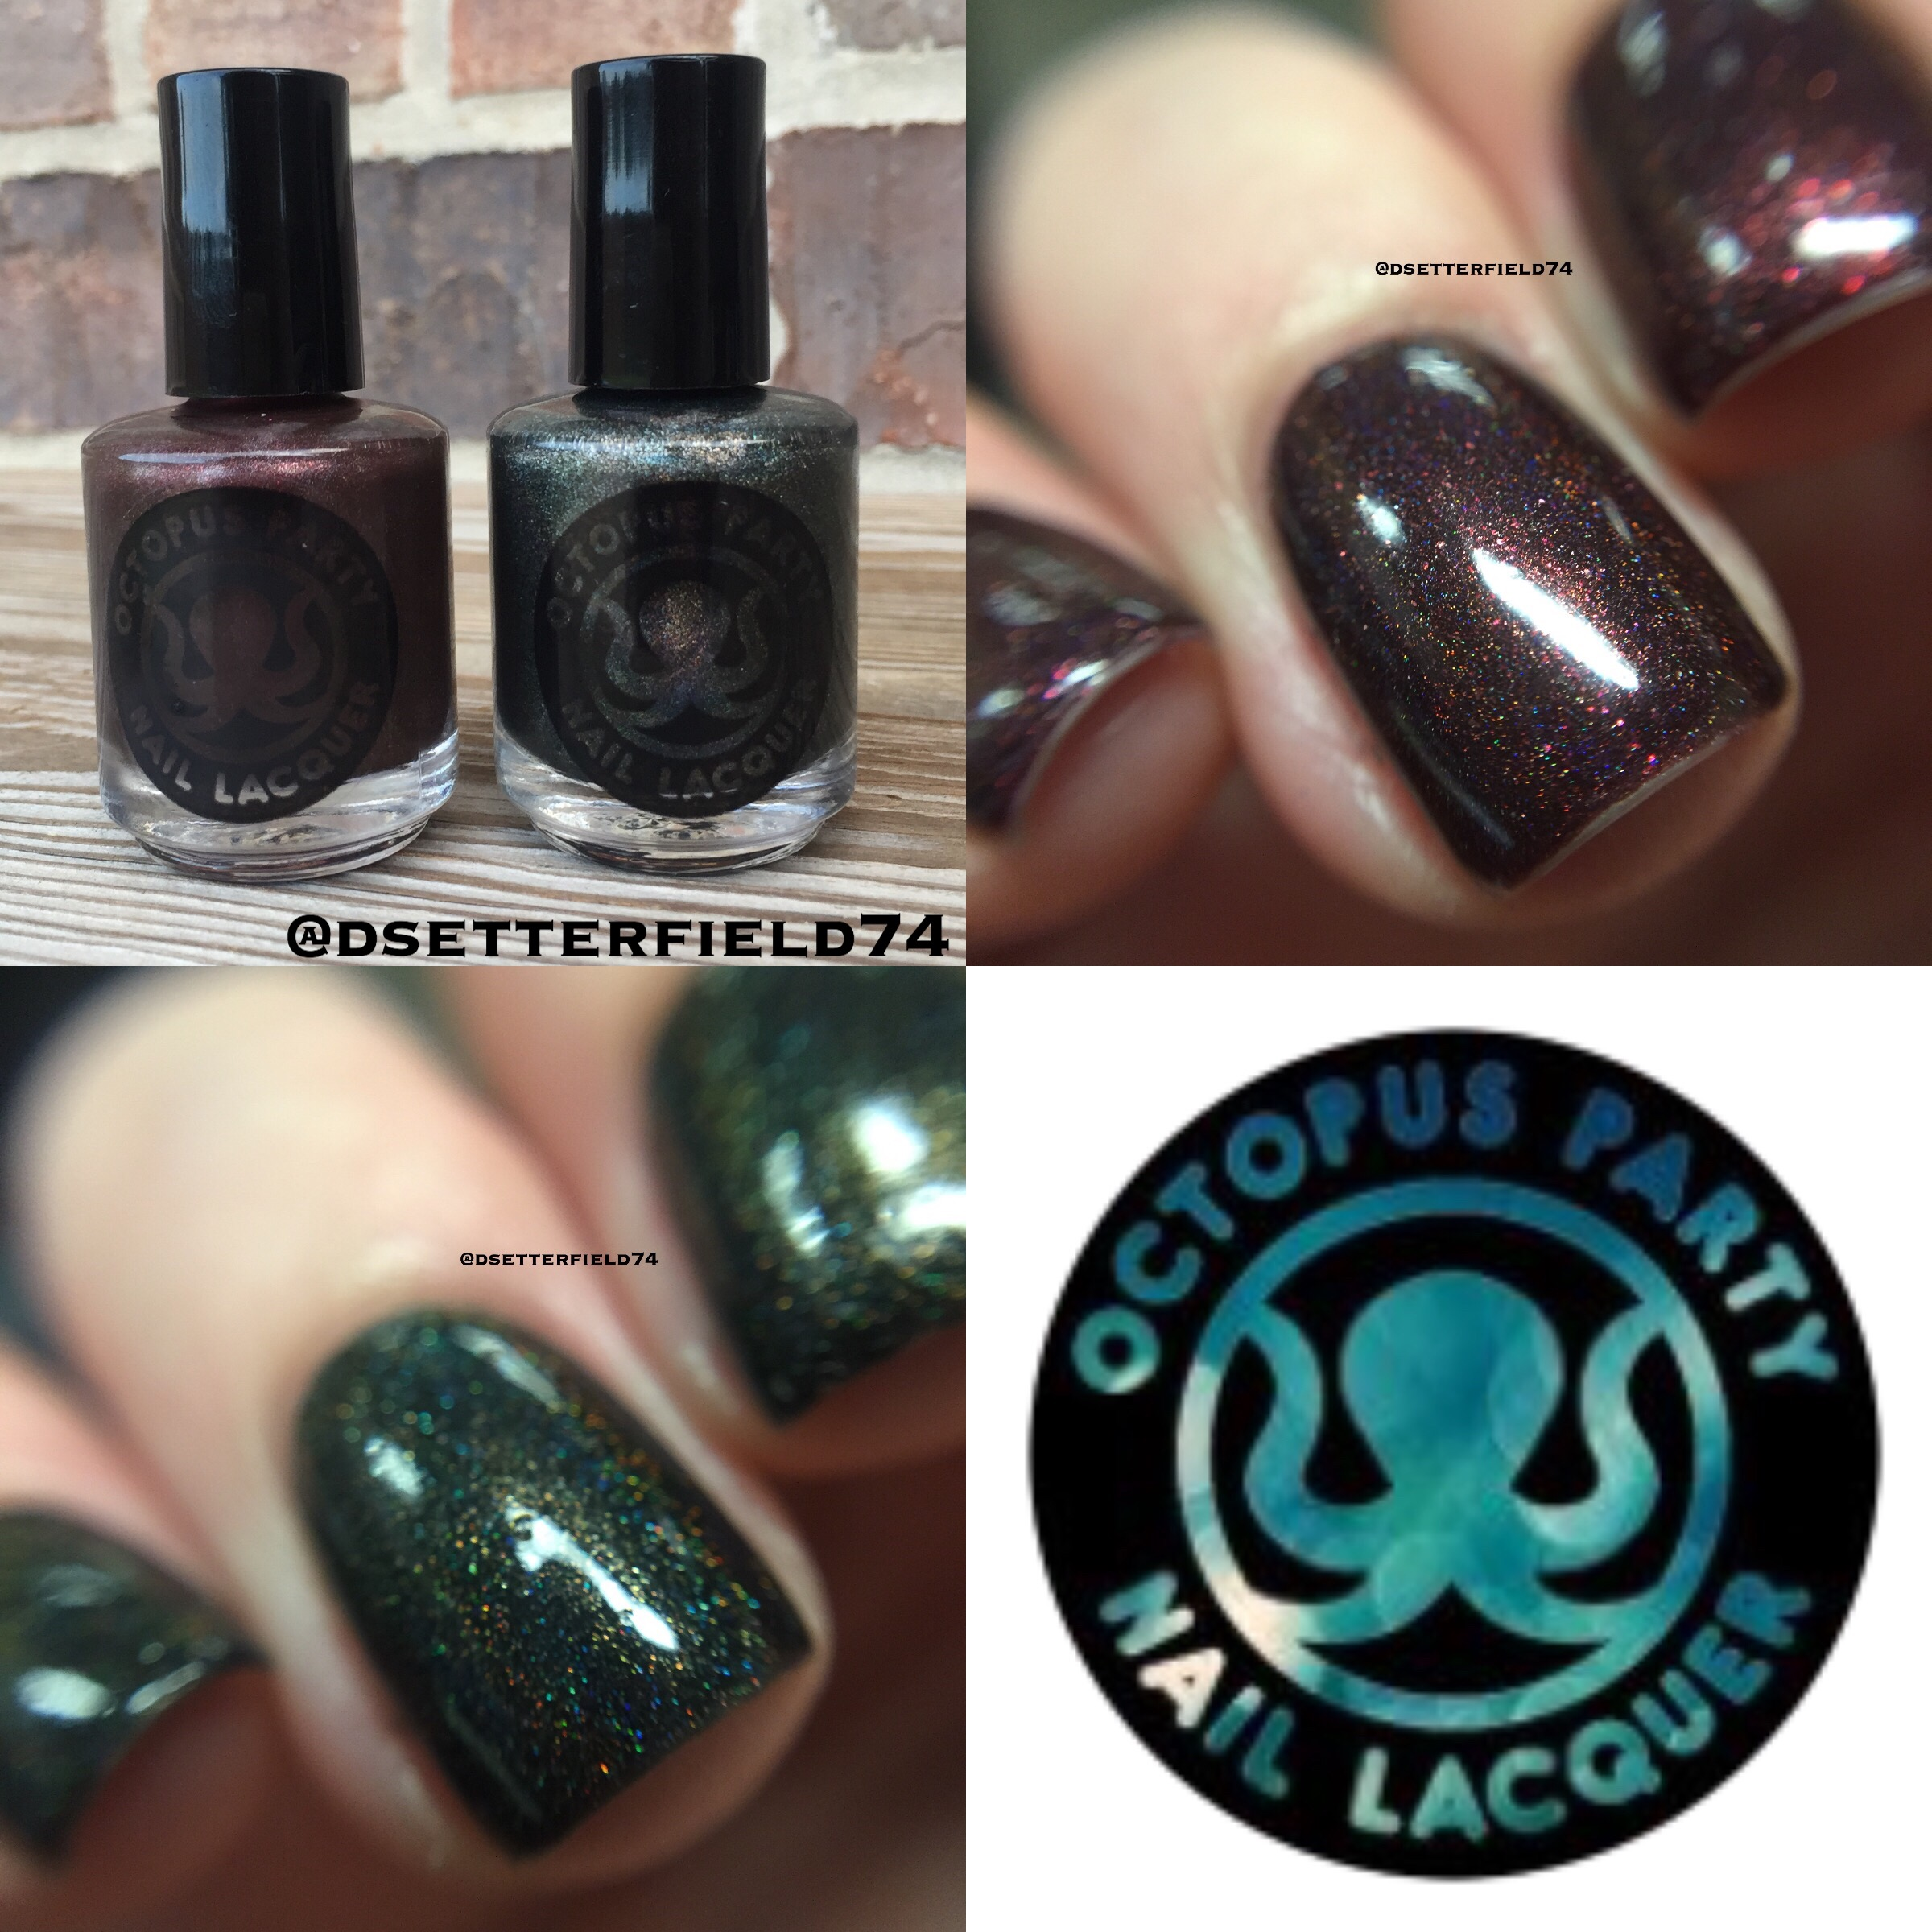 SwatchFest 2016 – Octopus Party Nail Lacquer | Snacks On Rotation